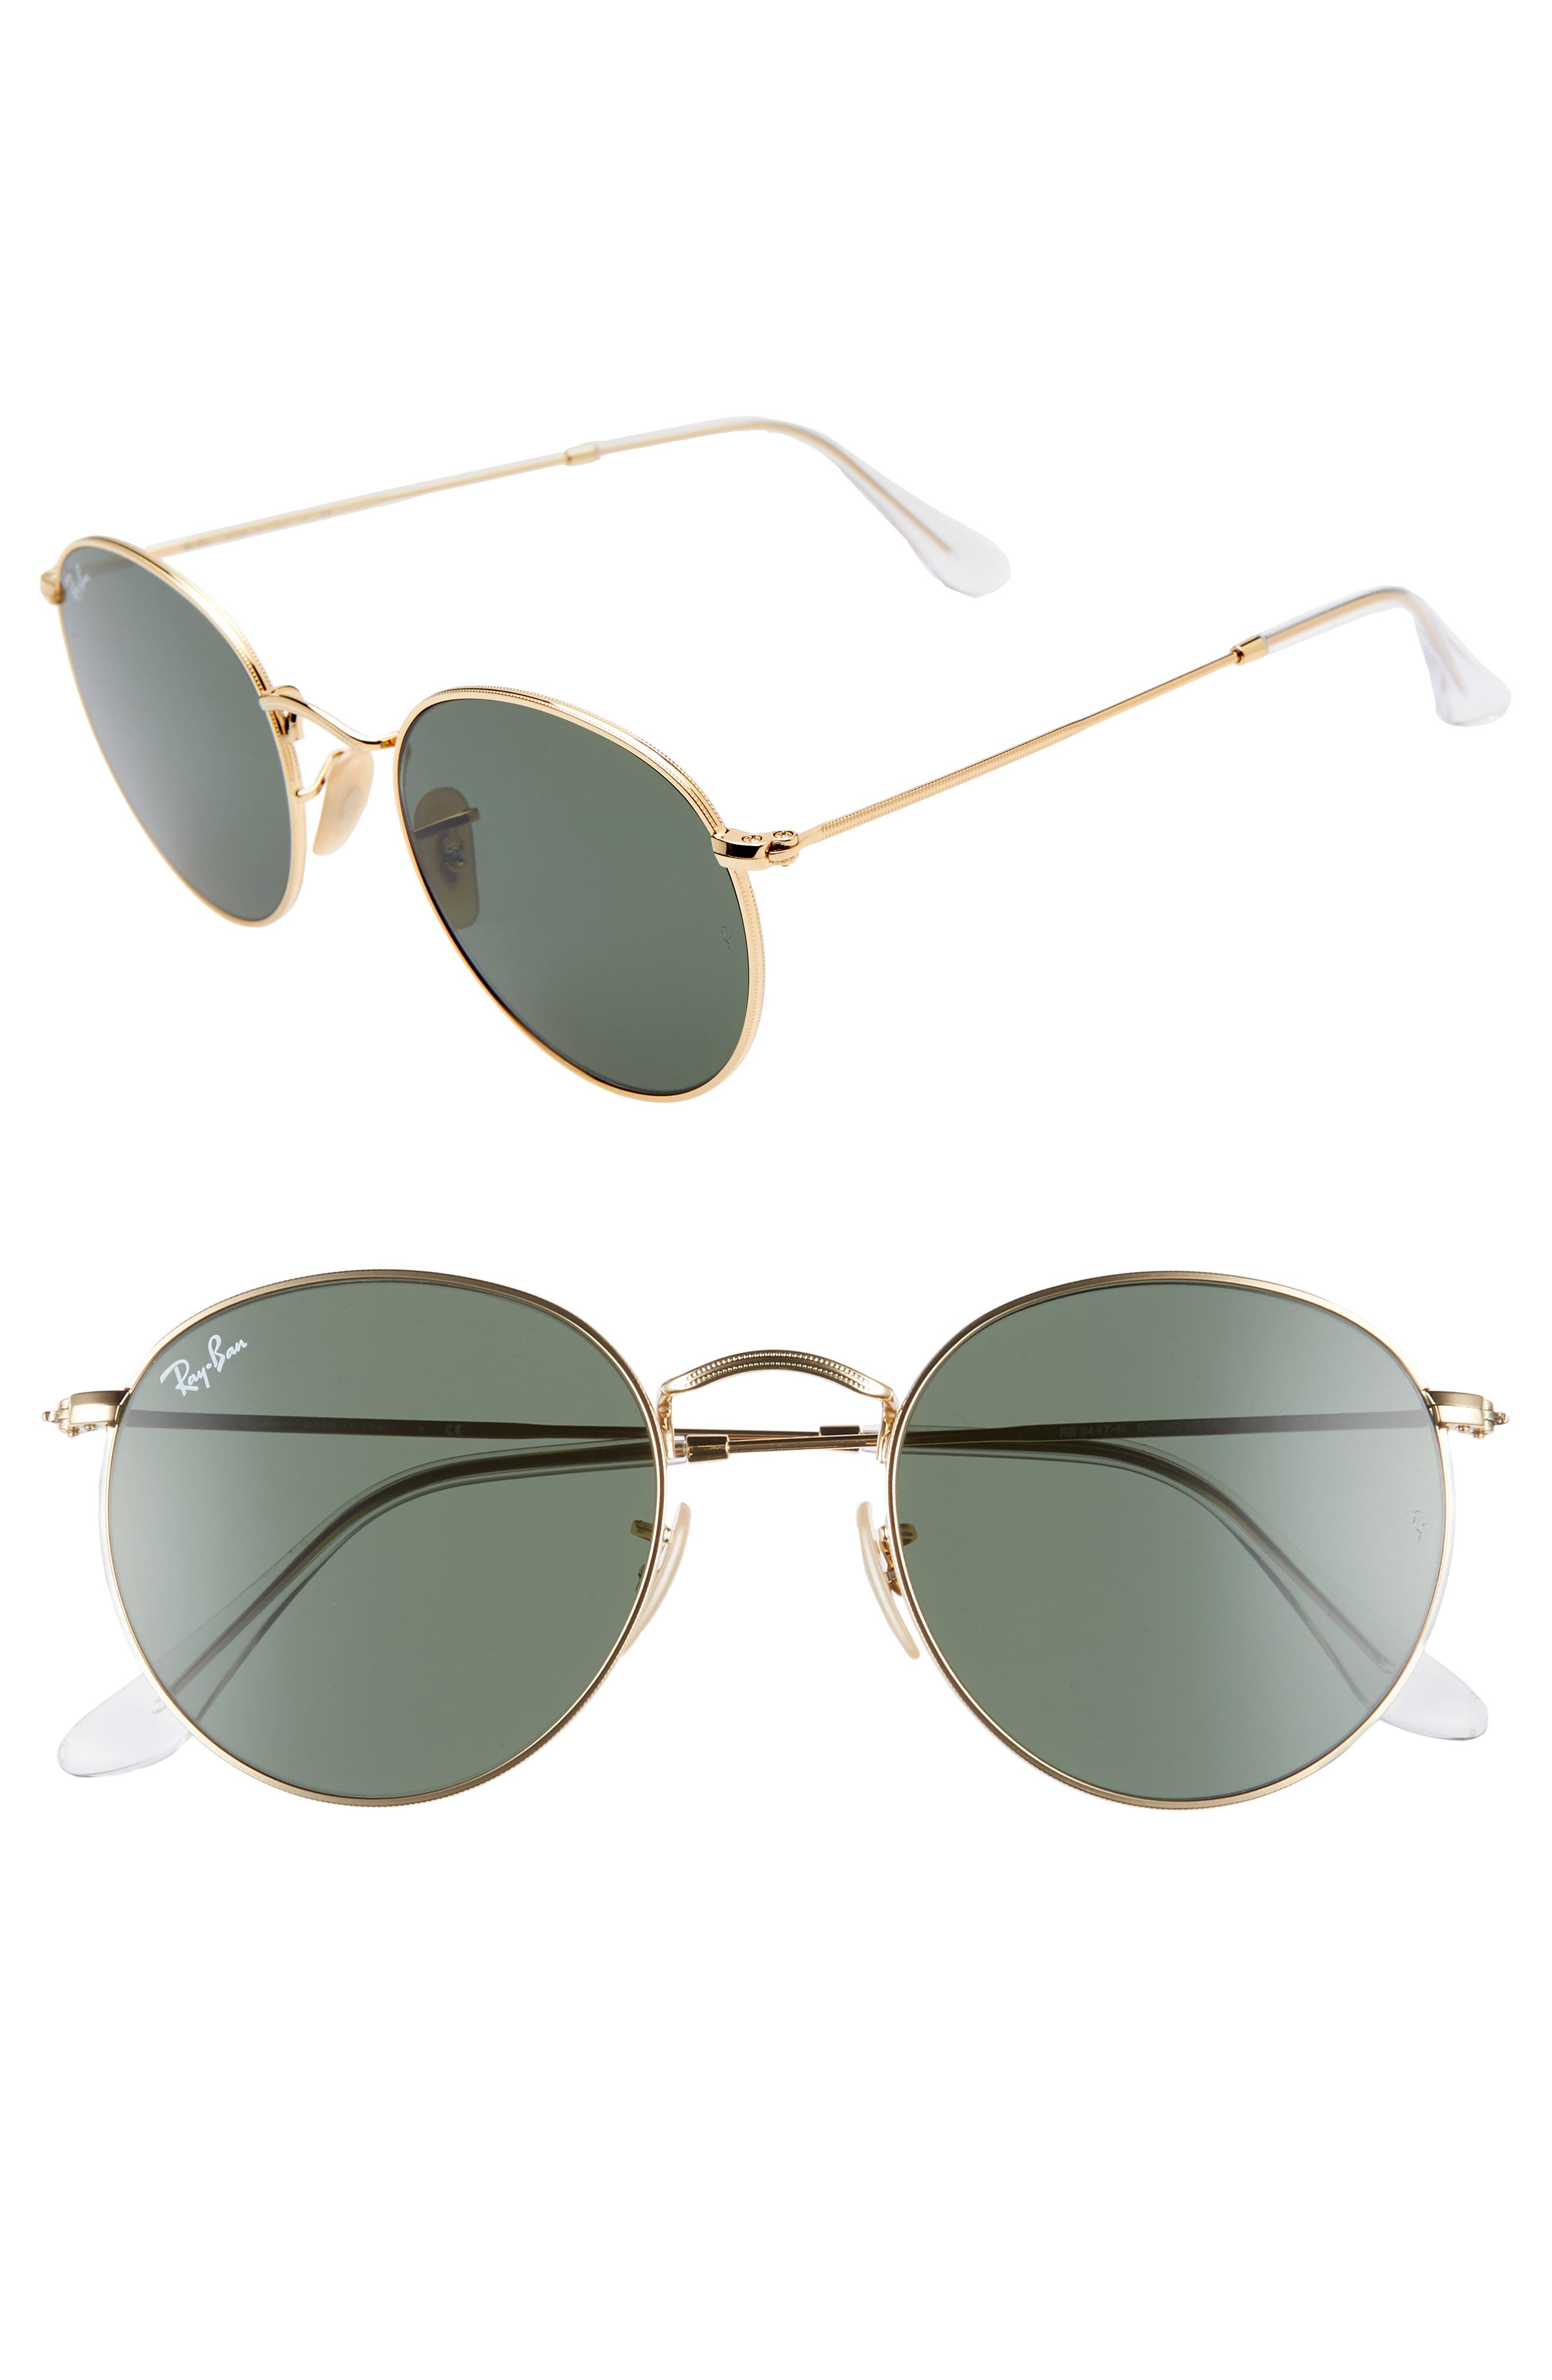 Ray-Ban 5m Round Sunglasses - Gold/ Green Gold